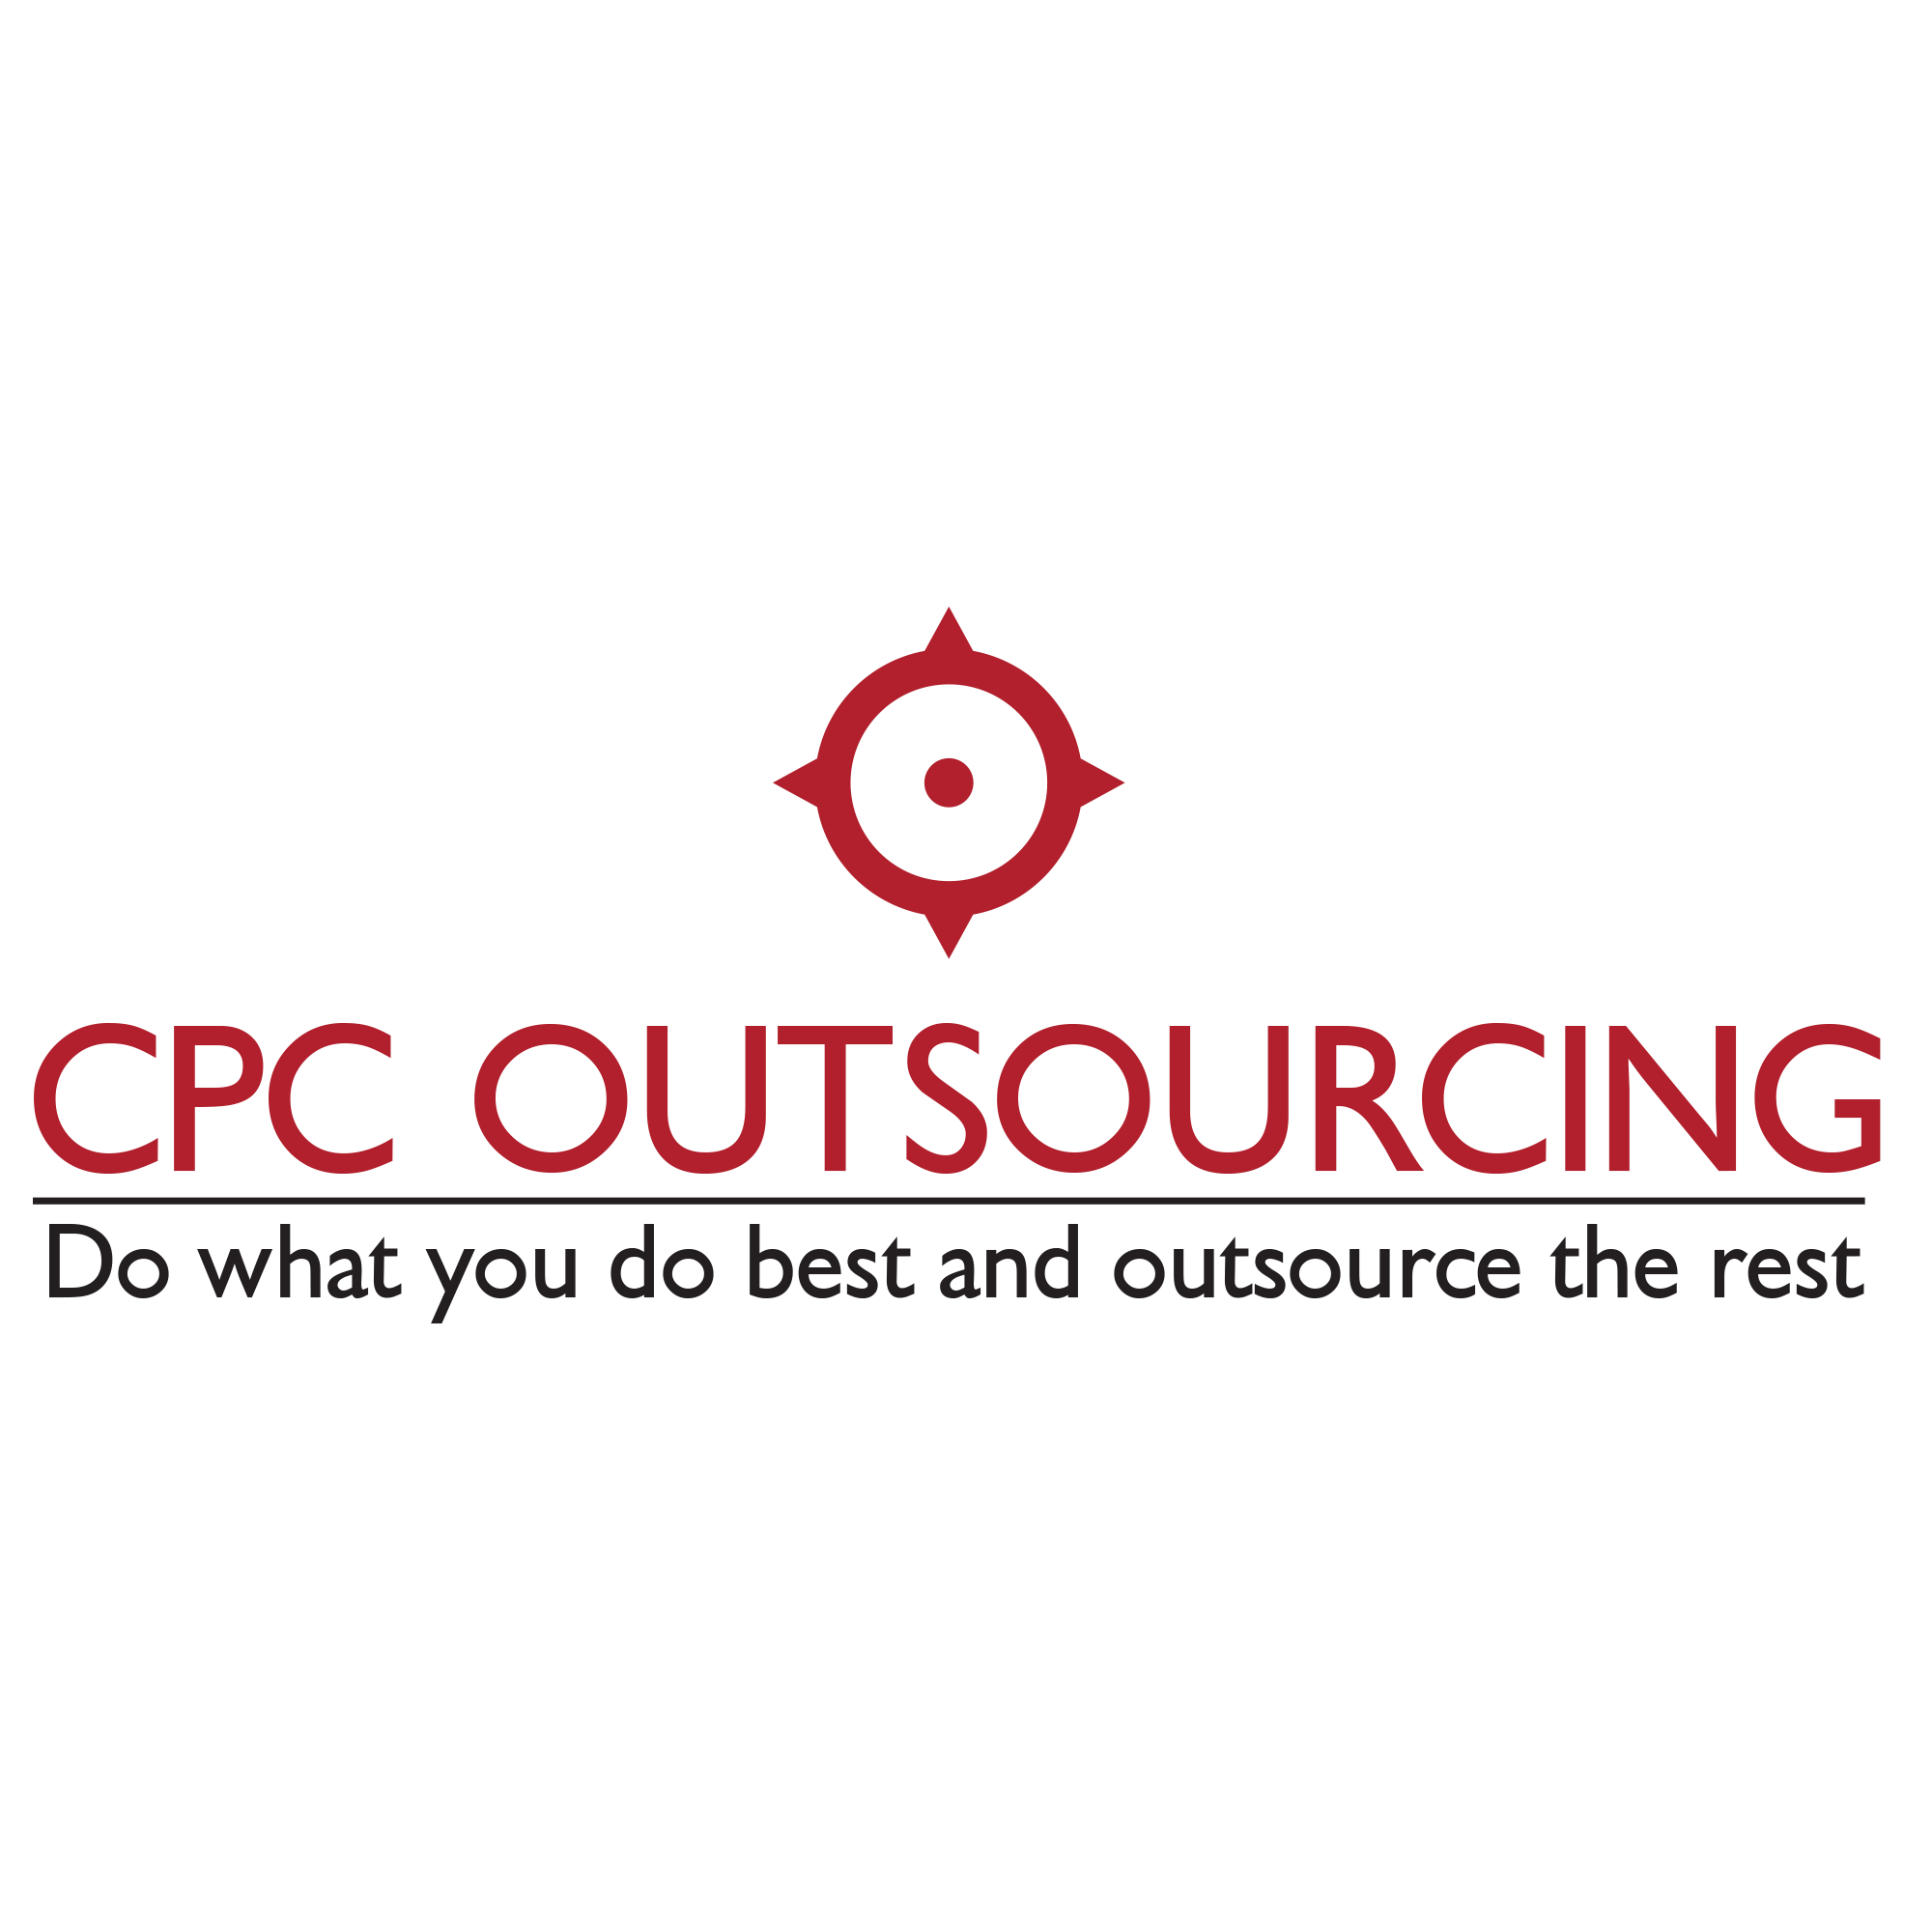 CPC Outsourcing